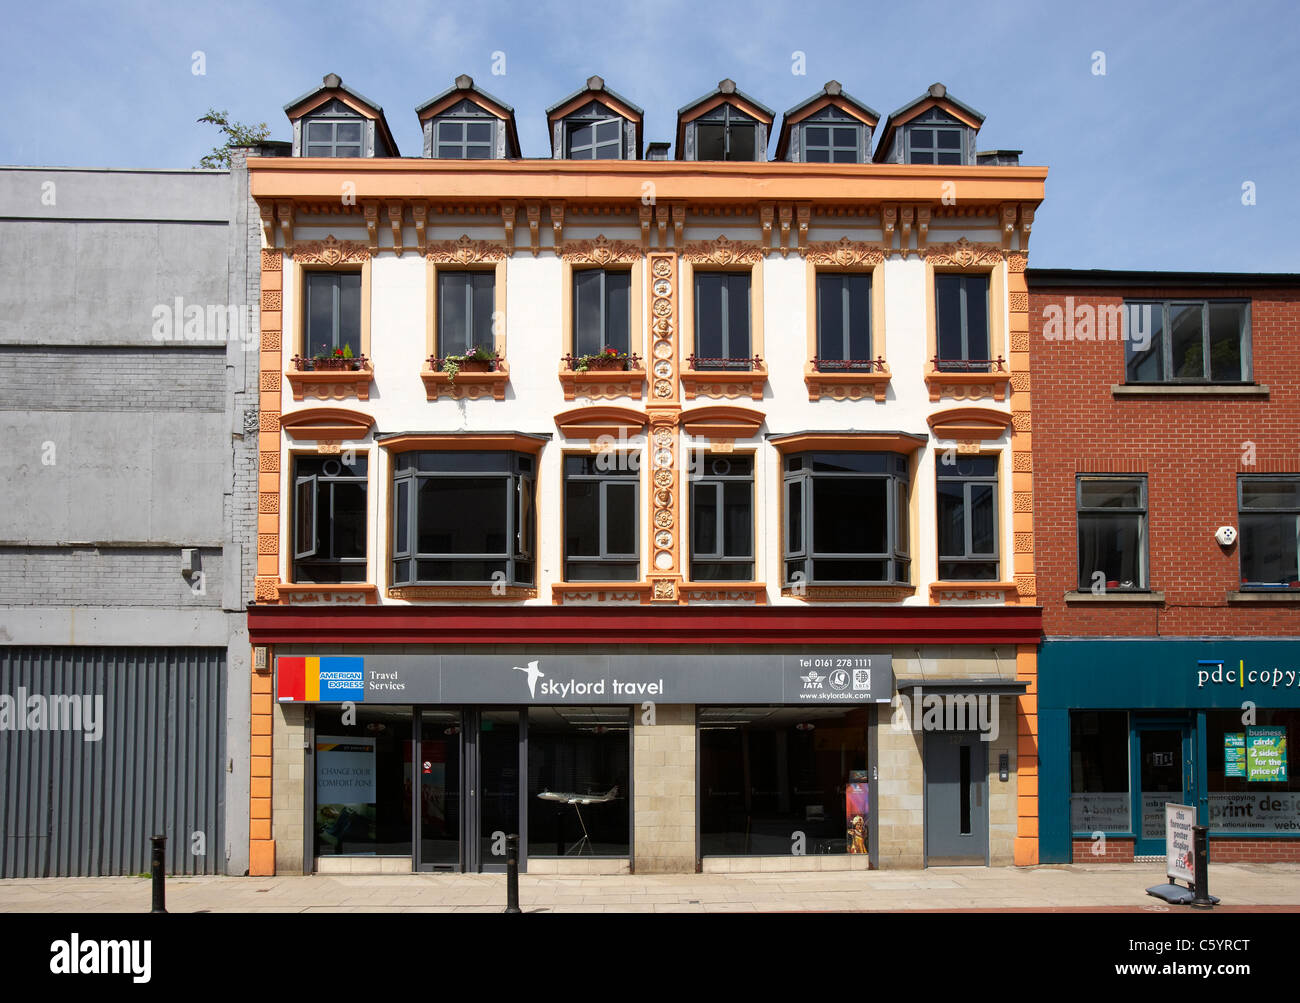 Skylord travel on Oldham Street in Northern Quarter Manchester UK - Stock Image